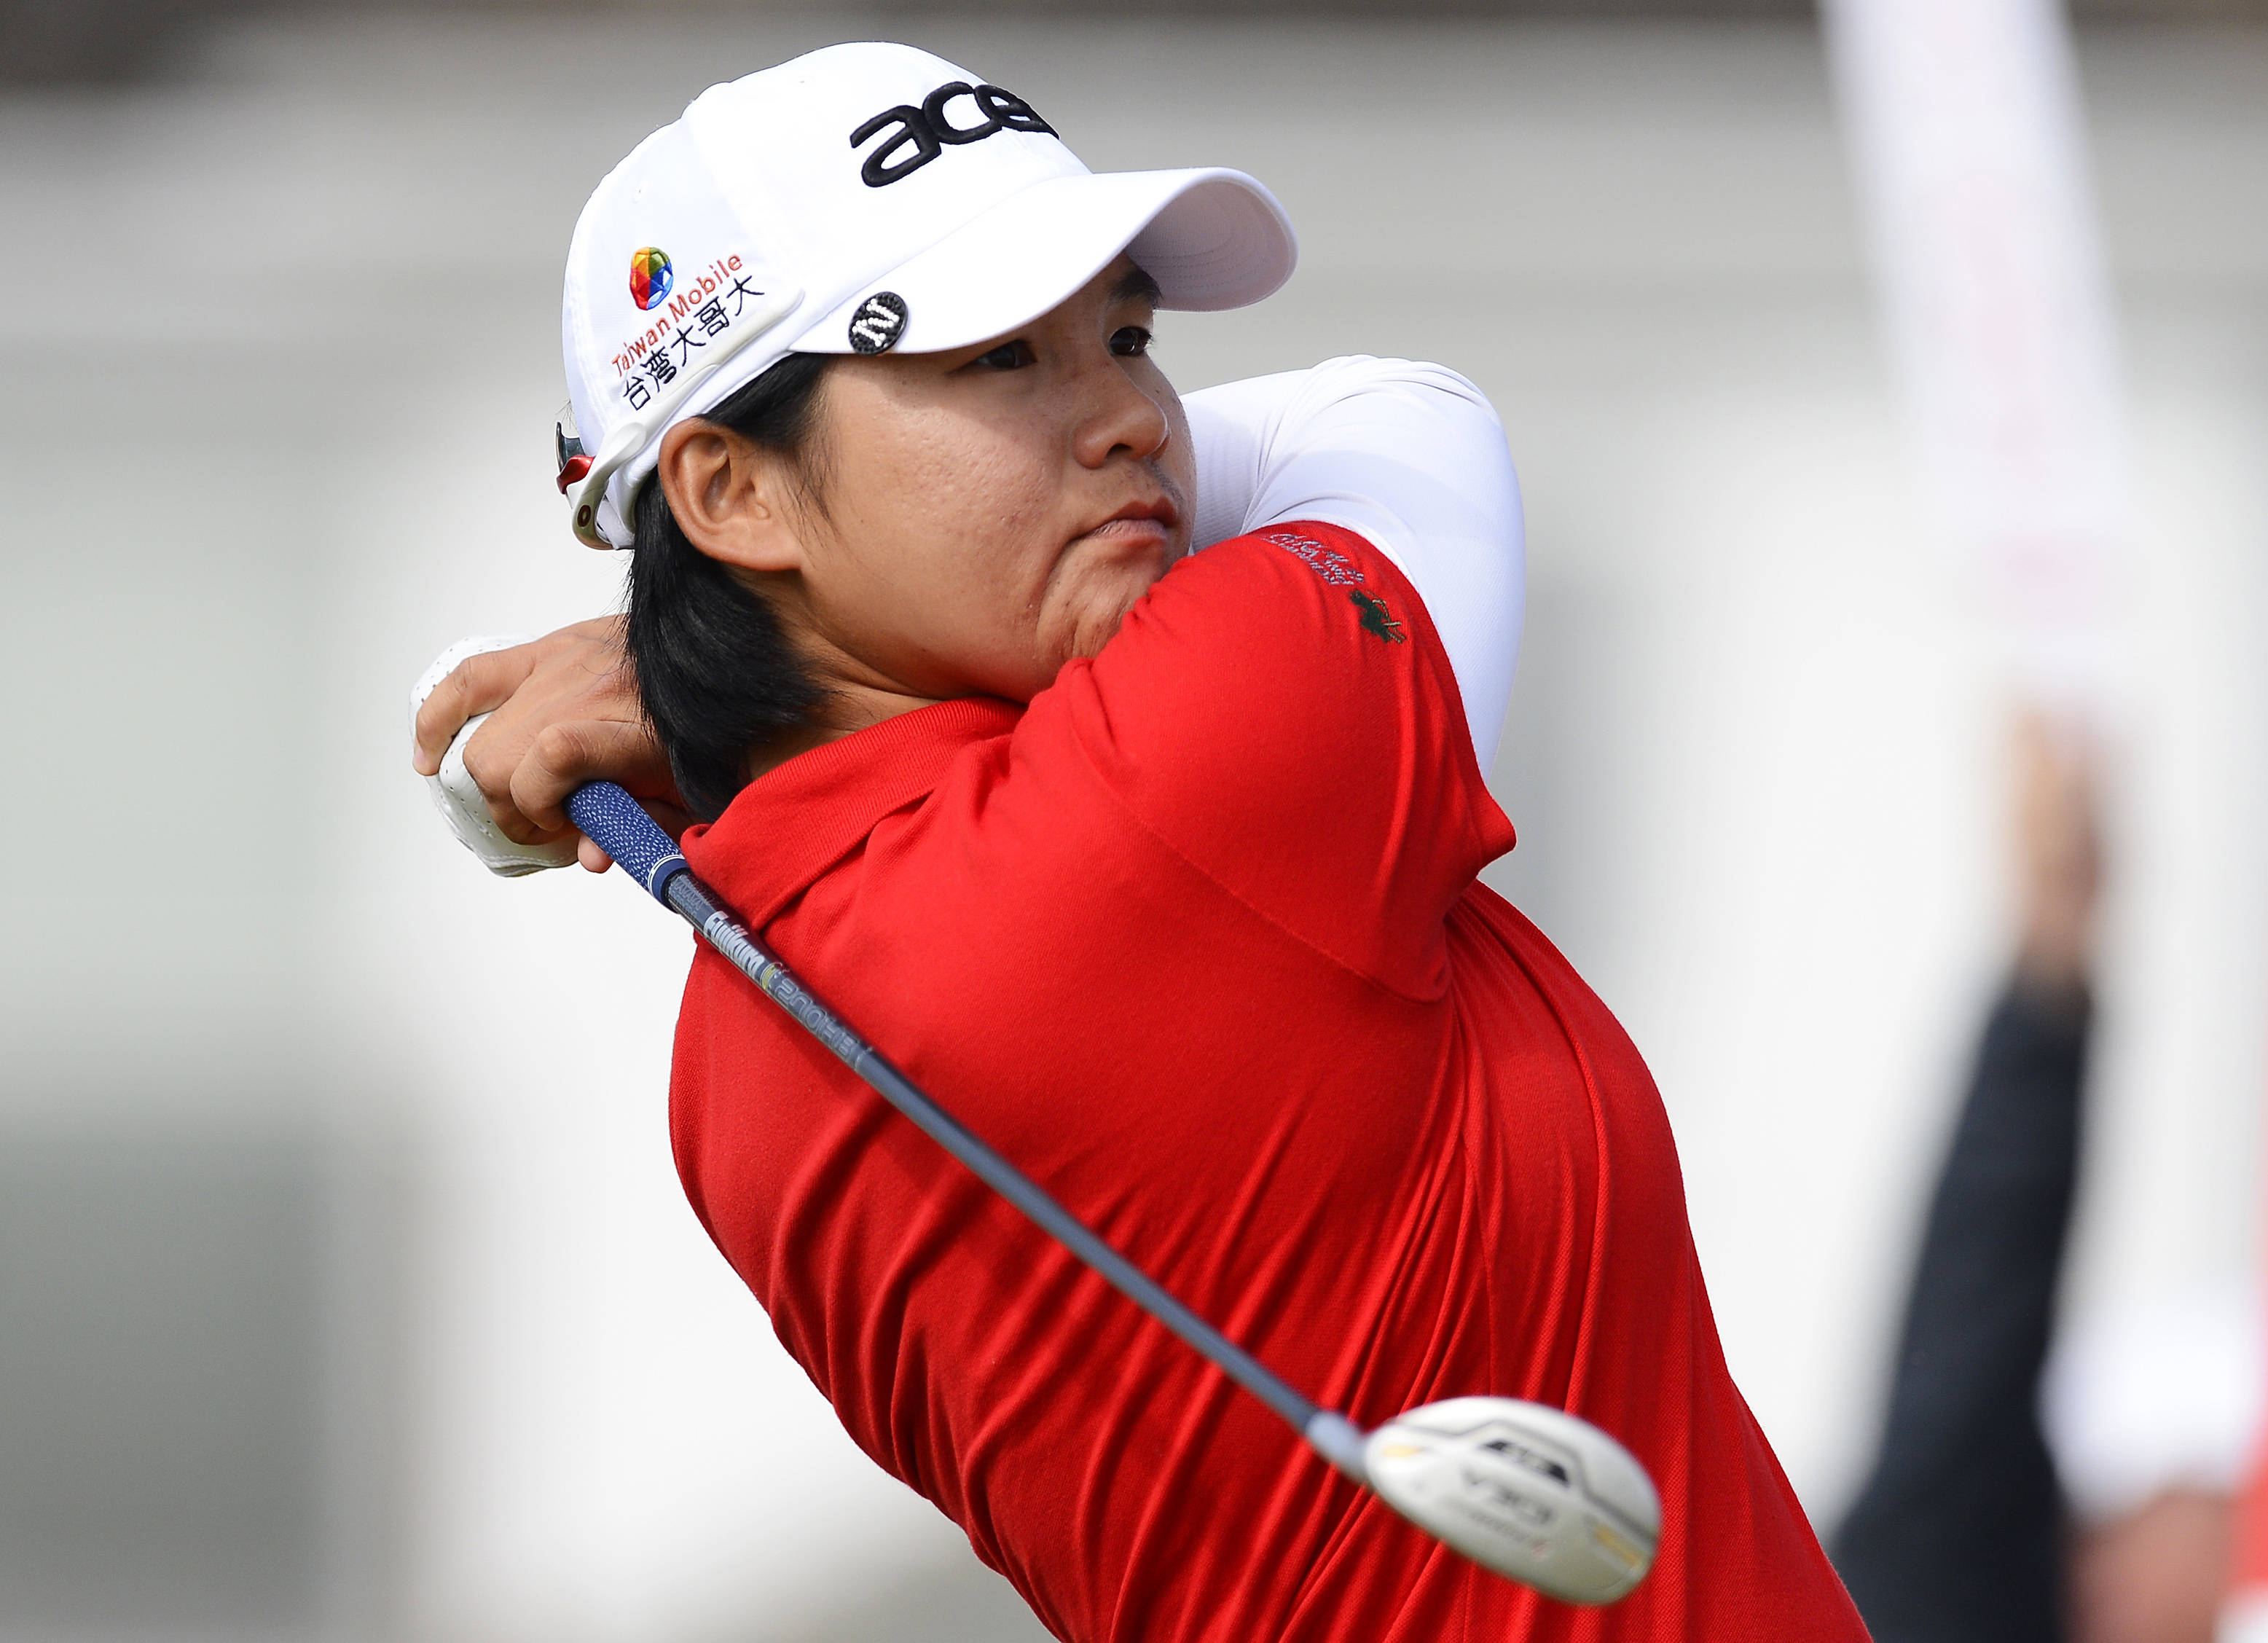 Yani Tseng of Taiwan hits her tee shot on the second hole during the second round of the British Women's Open Golf tournament at Royal Liverpool Golf Club, northern England, September 15, 2012.